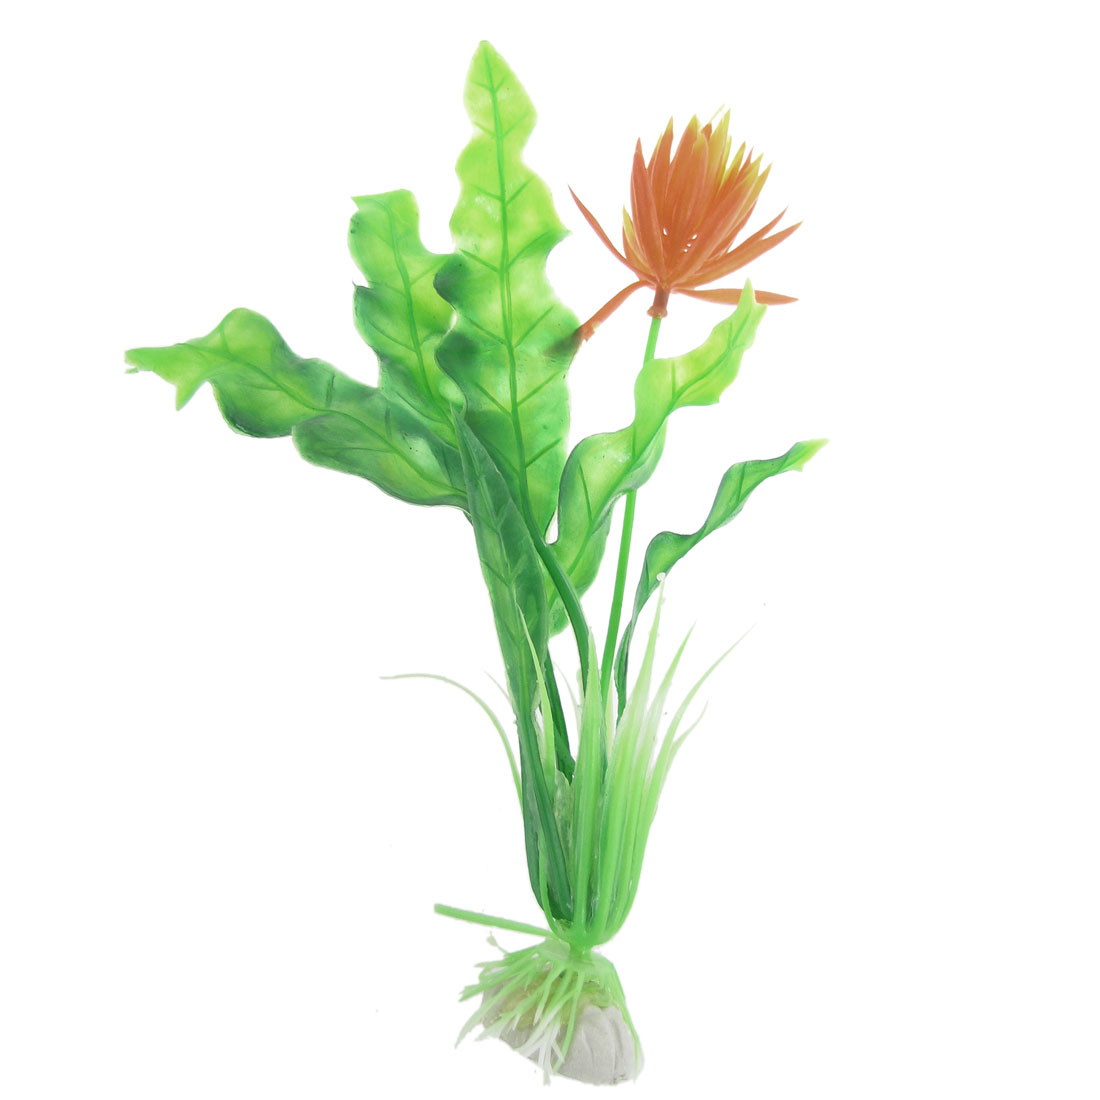 10 Pcs Green Orange Artificial Plastic Water Lotus for Aquarium 21cm